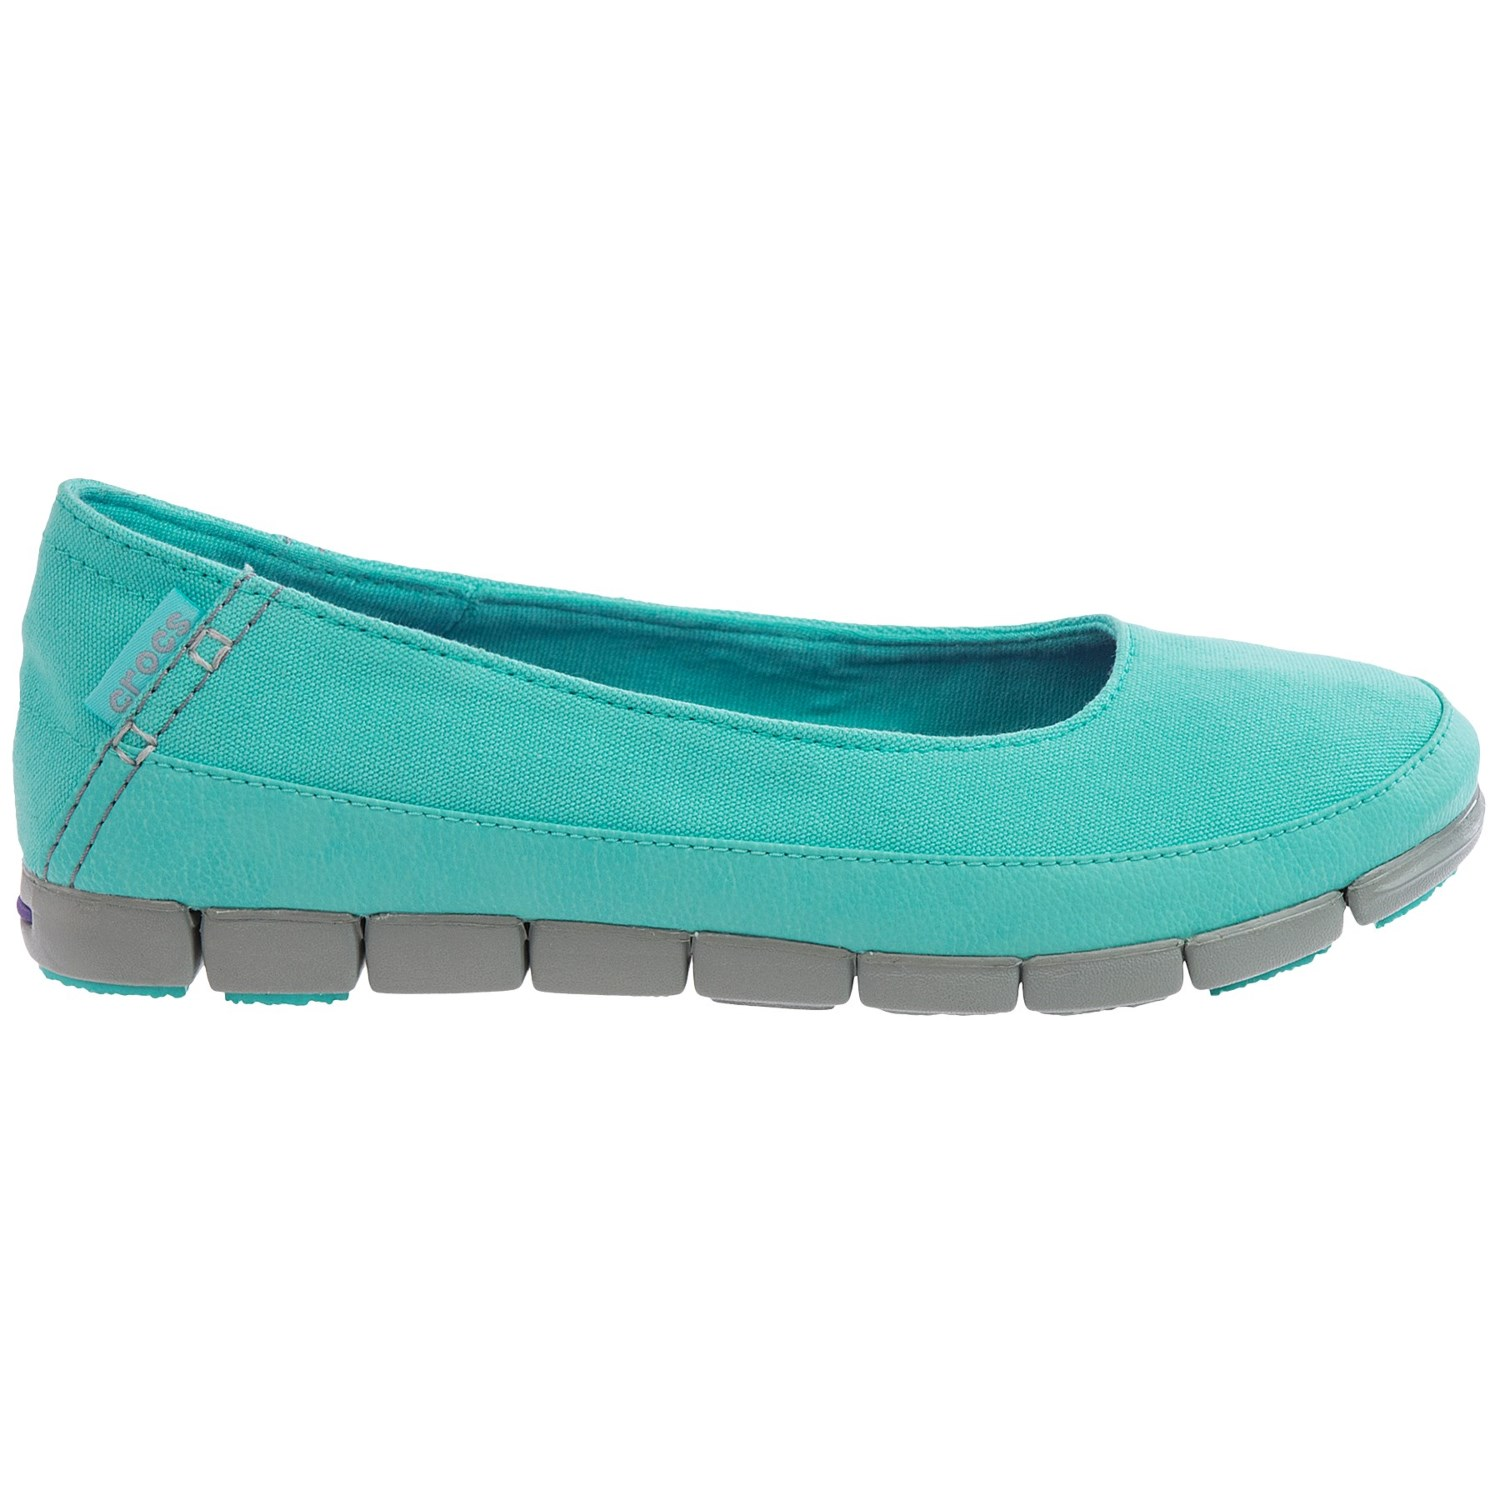 Crocs Stretch Sole Shoes Flats For Women